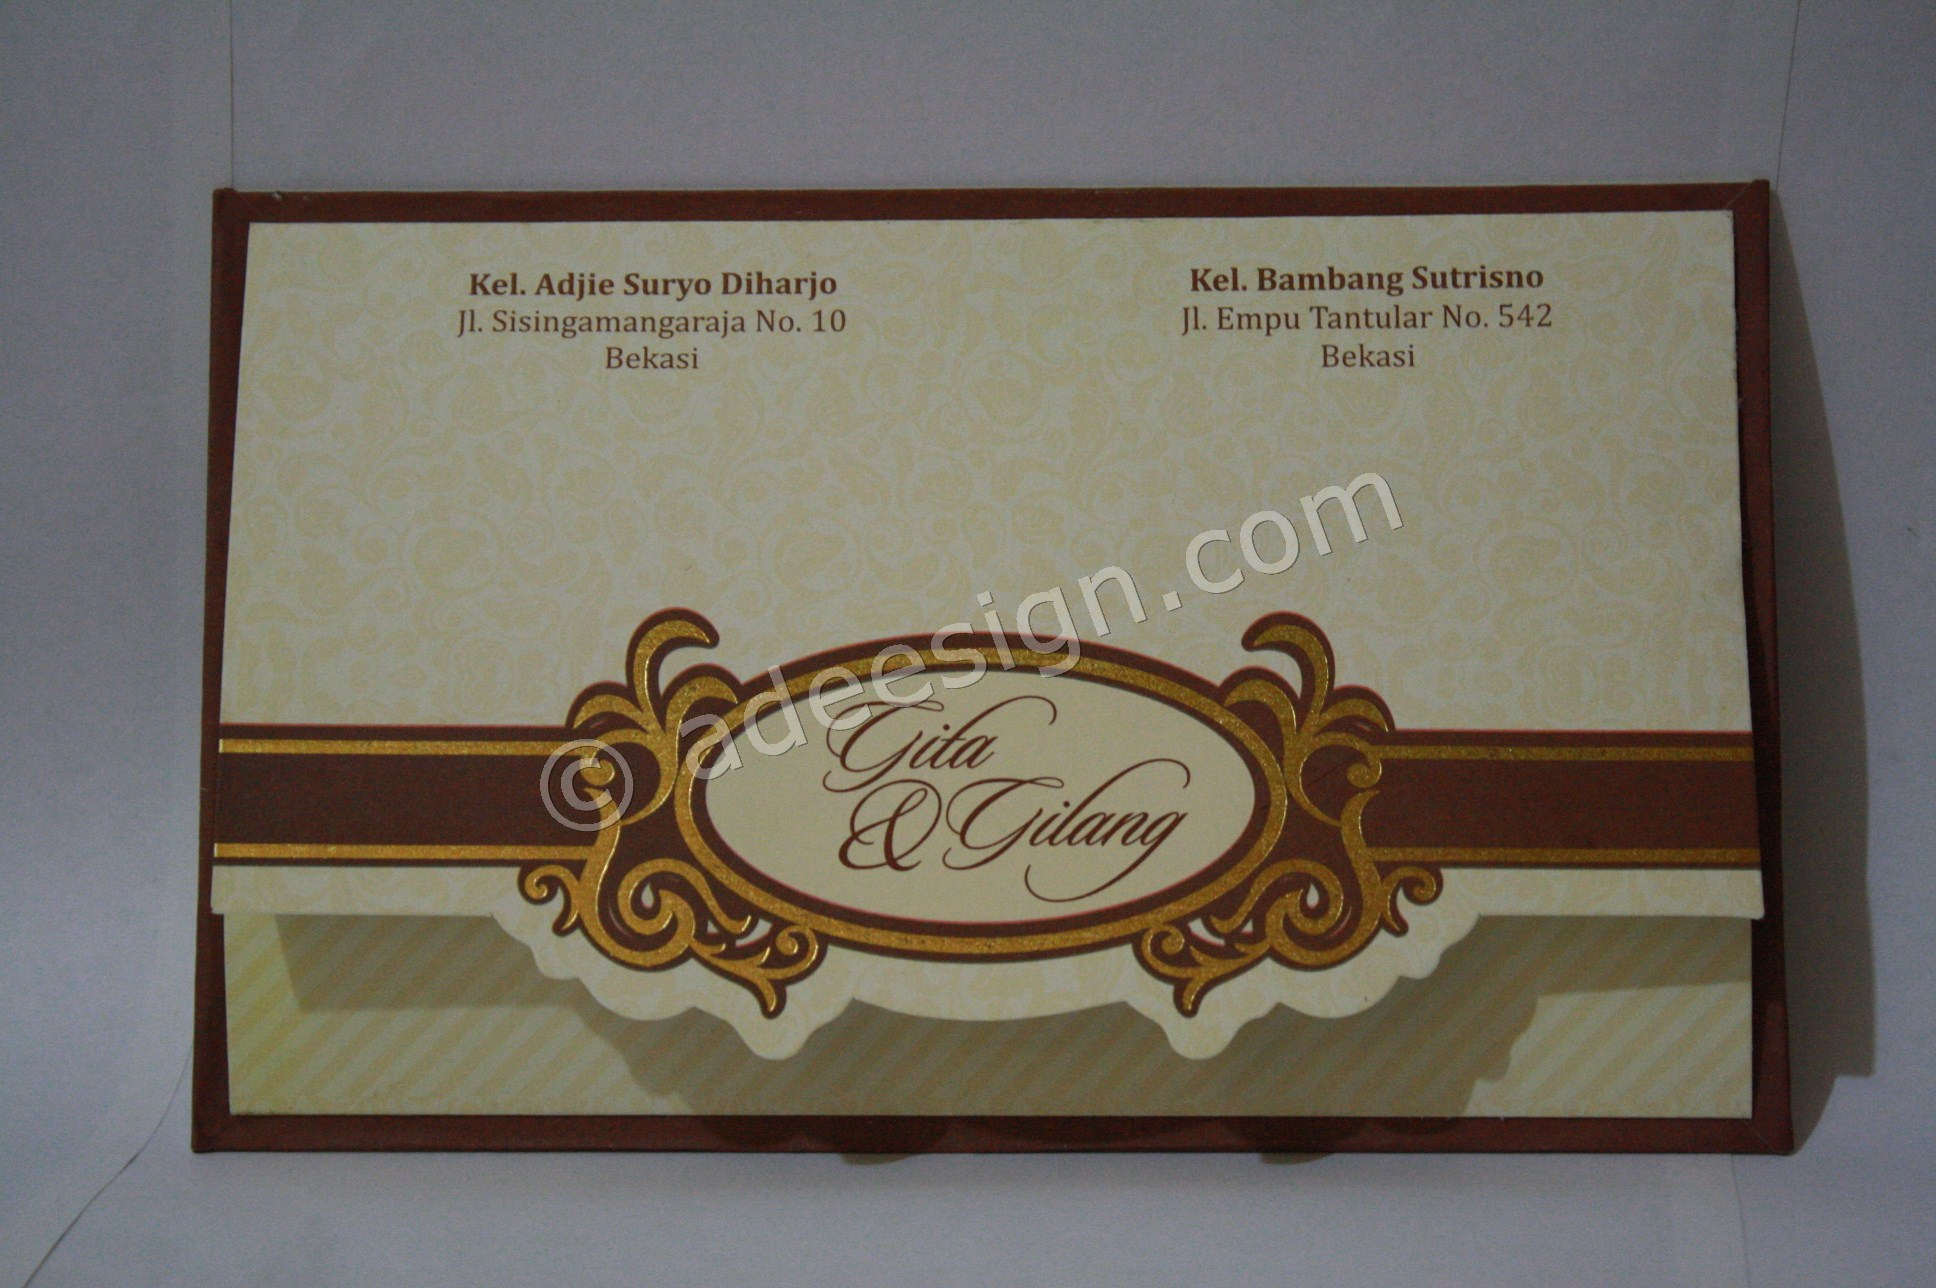 Undangan Pernikahan Semi Hard Cover Gita dan Gilang 1 - Percetakan Wedding Invitations Unik dan Simple di Dukuh Sutorejo